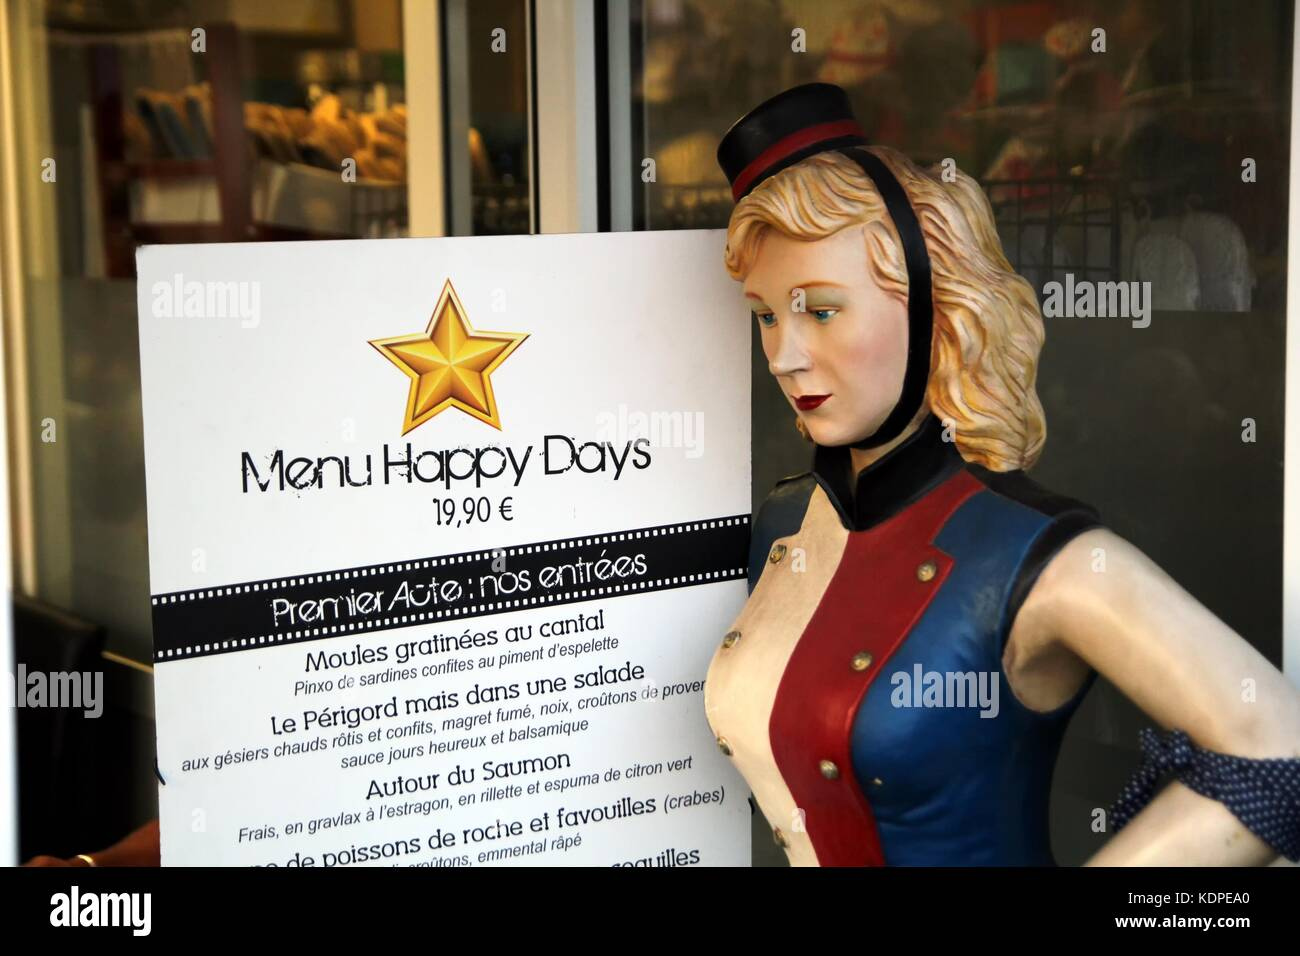 Menu at the French Hollywood themed 'Restaurant Les Jours Heureux, Valras-Plage', with a female mannequin - Stock Image